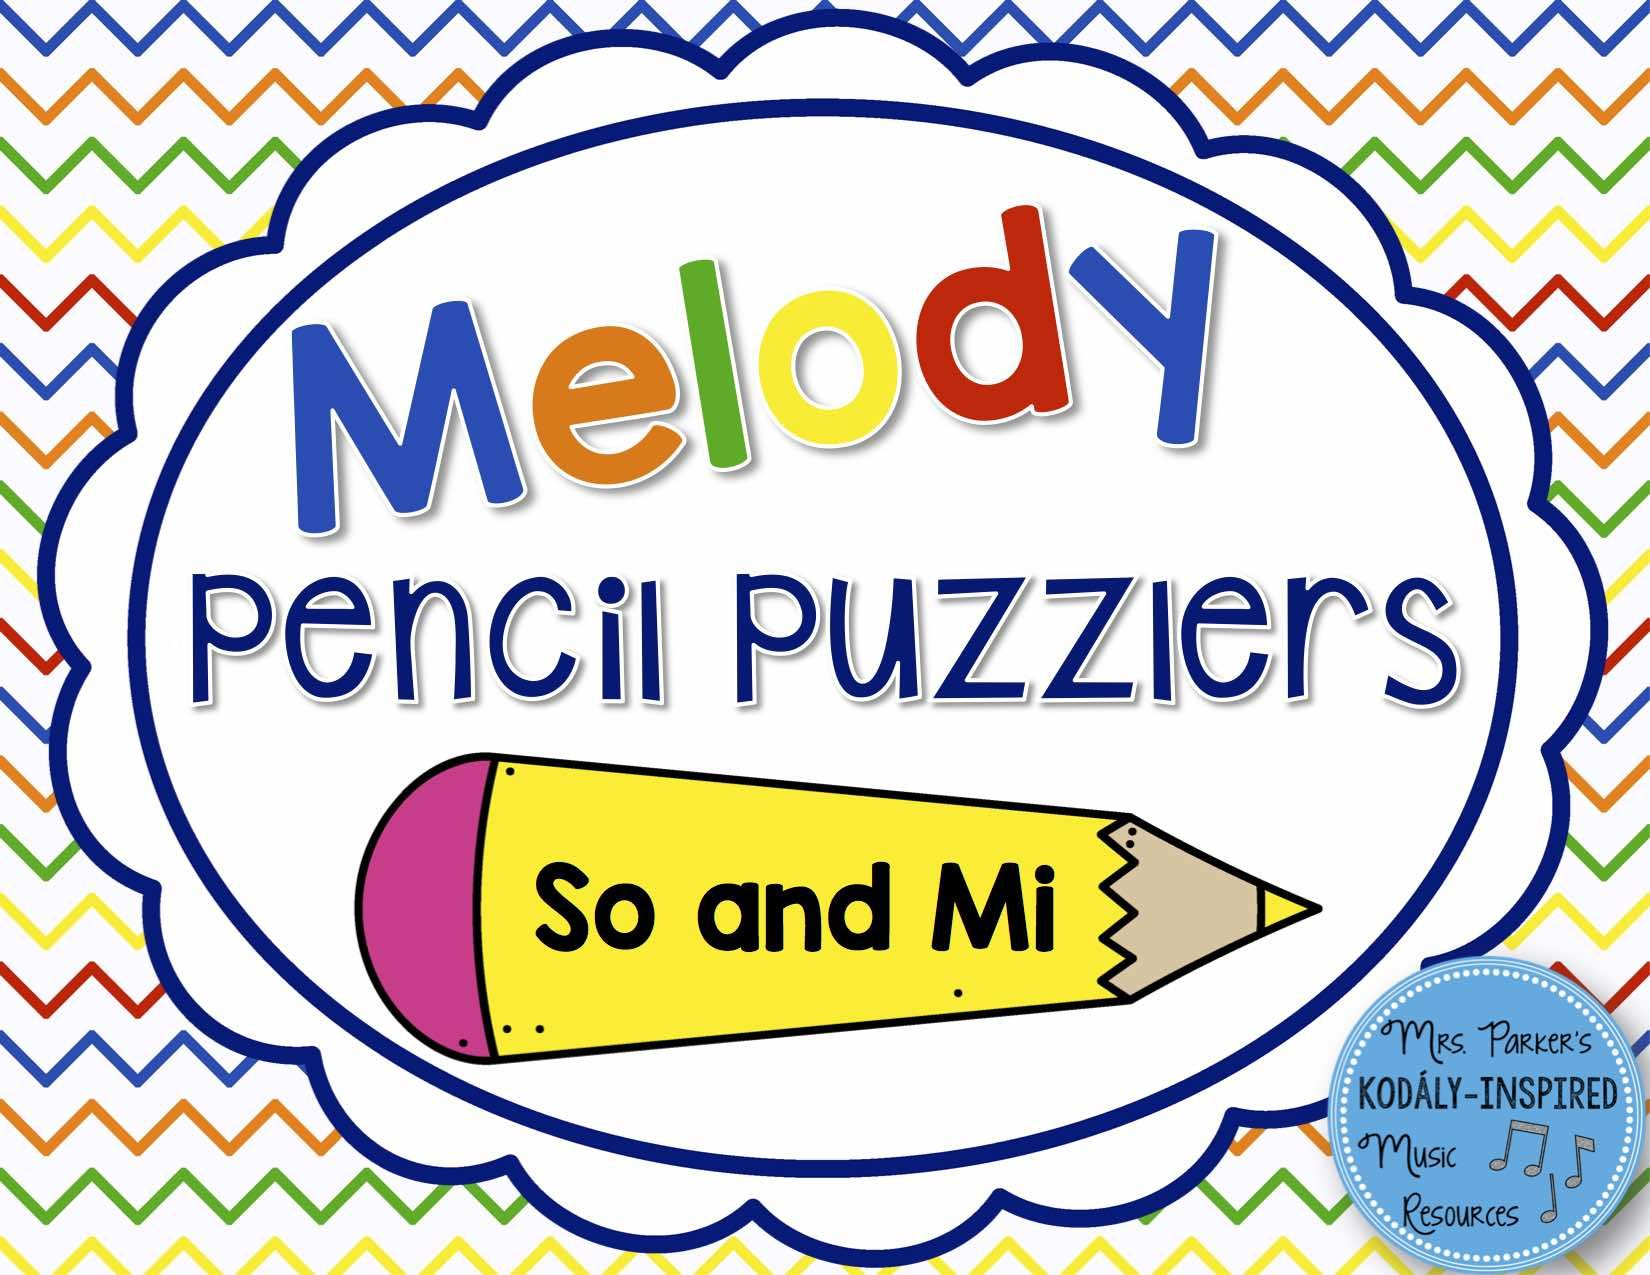 Melody Pencil Puzzlers So And Mi